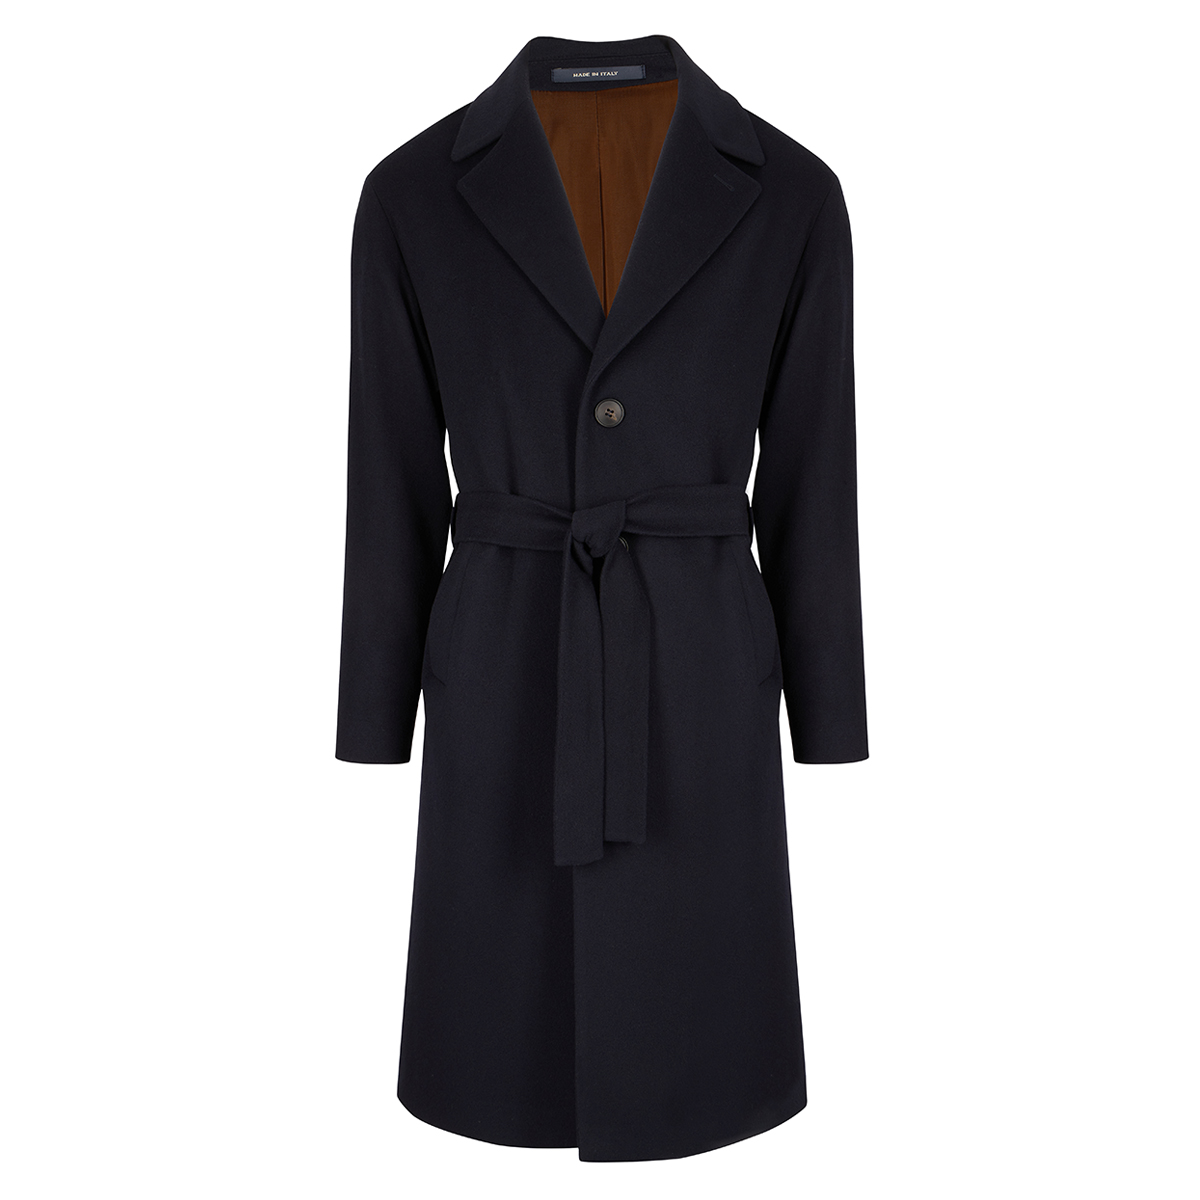 Navy Wool and Cashmere Single Breasted Coat